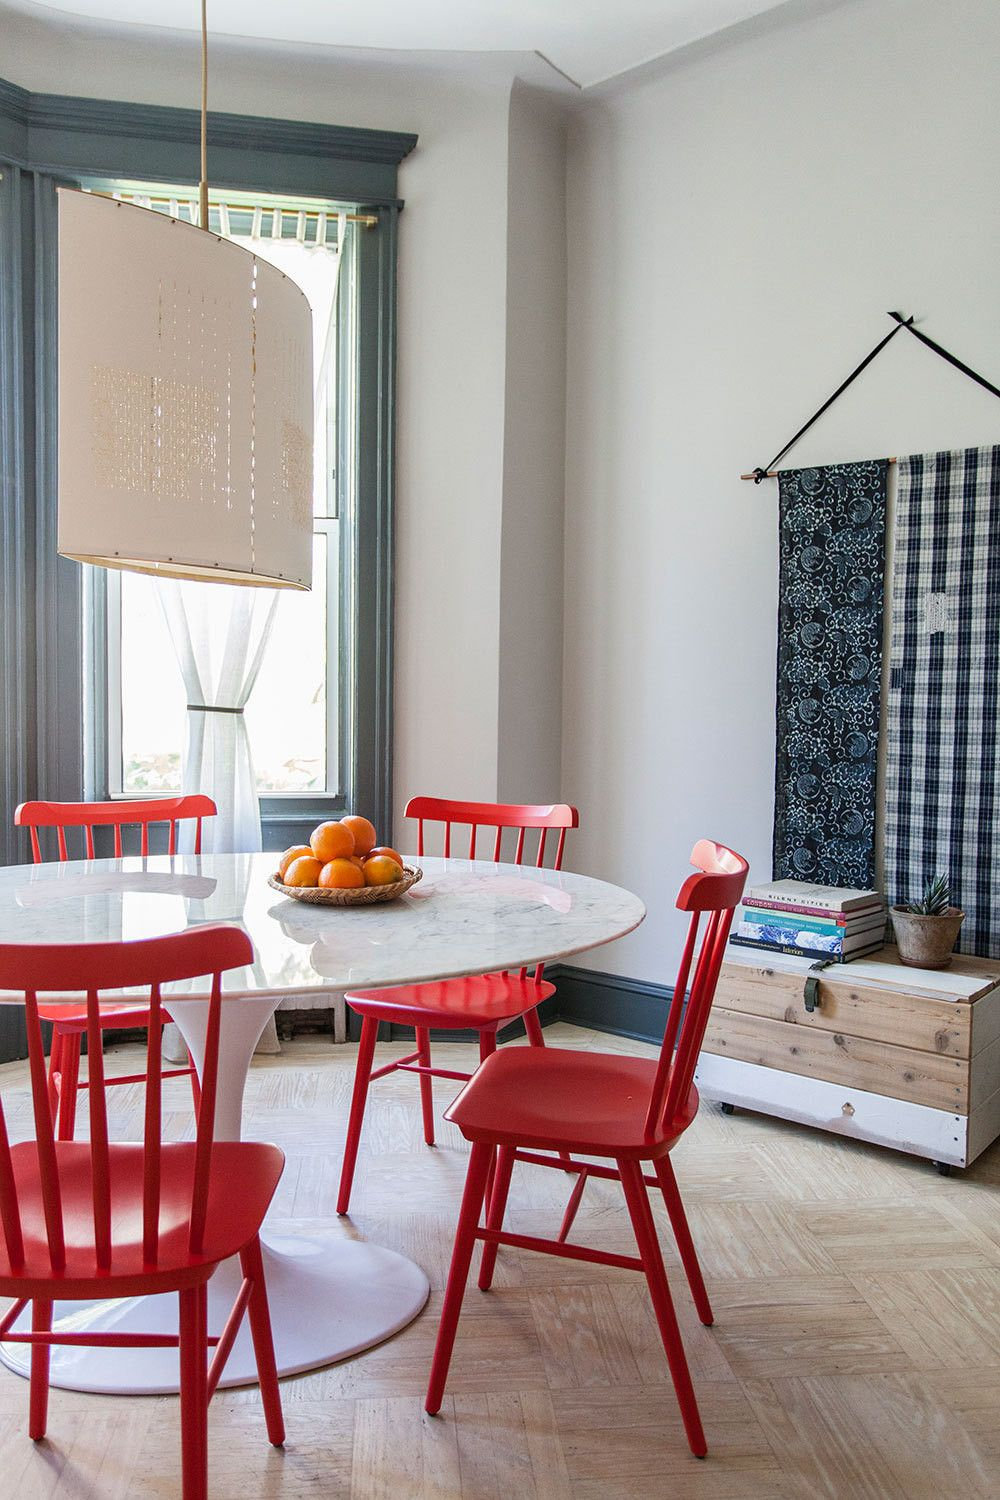 a creative home makeover we wish wed done ourselves red chairsdining chairsdining roomspainted